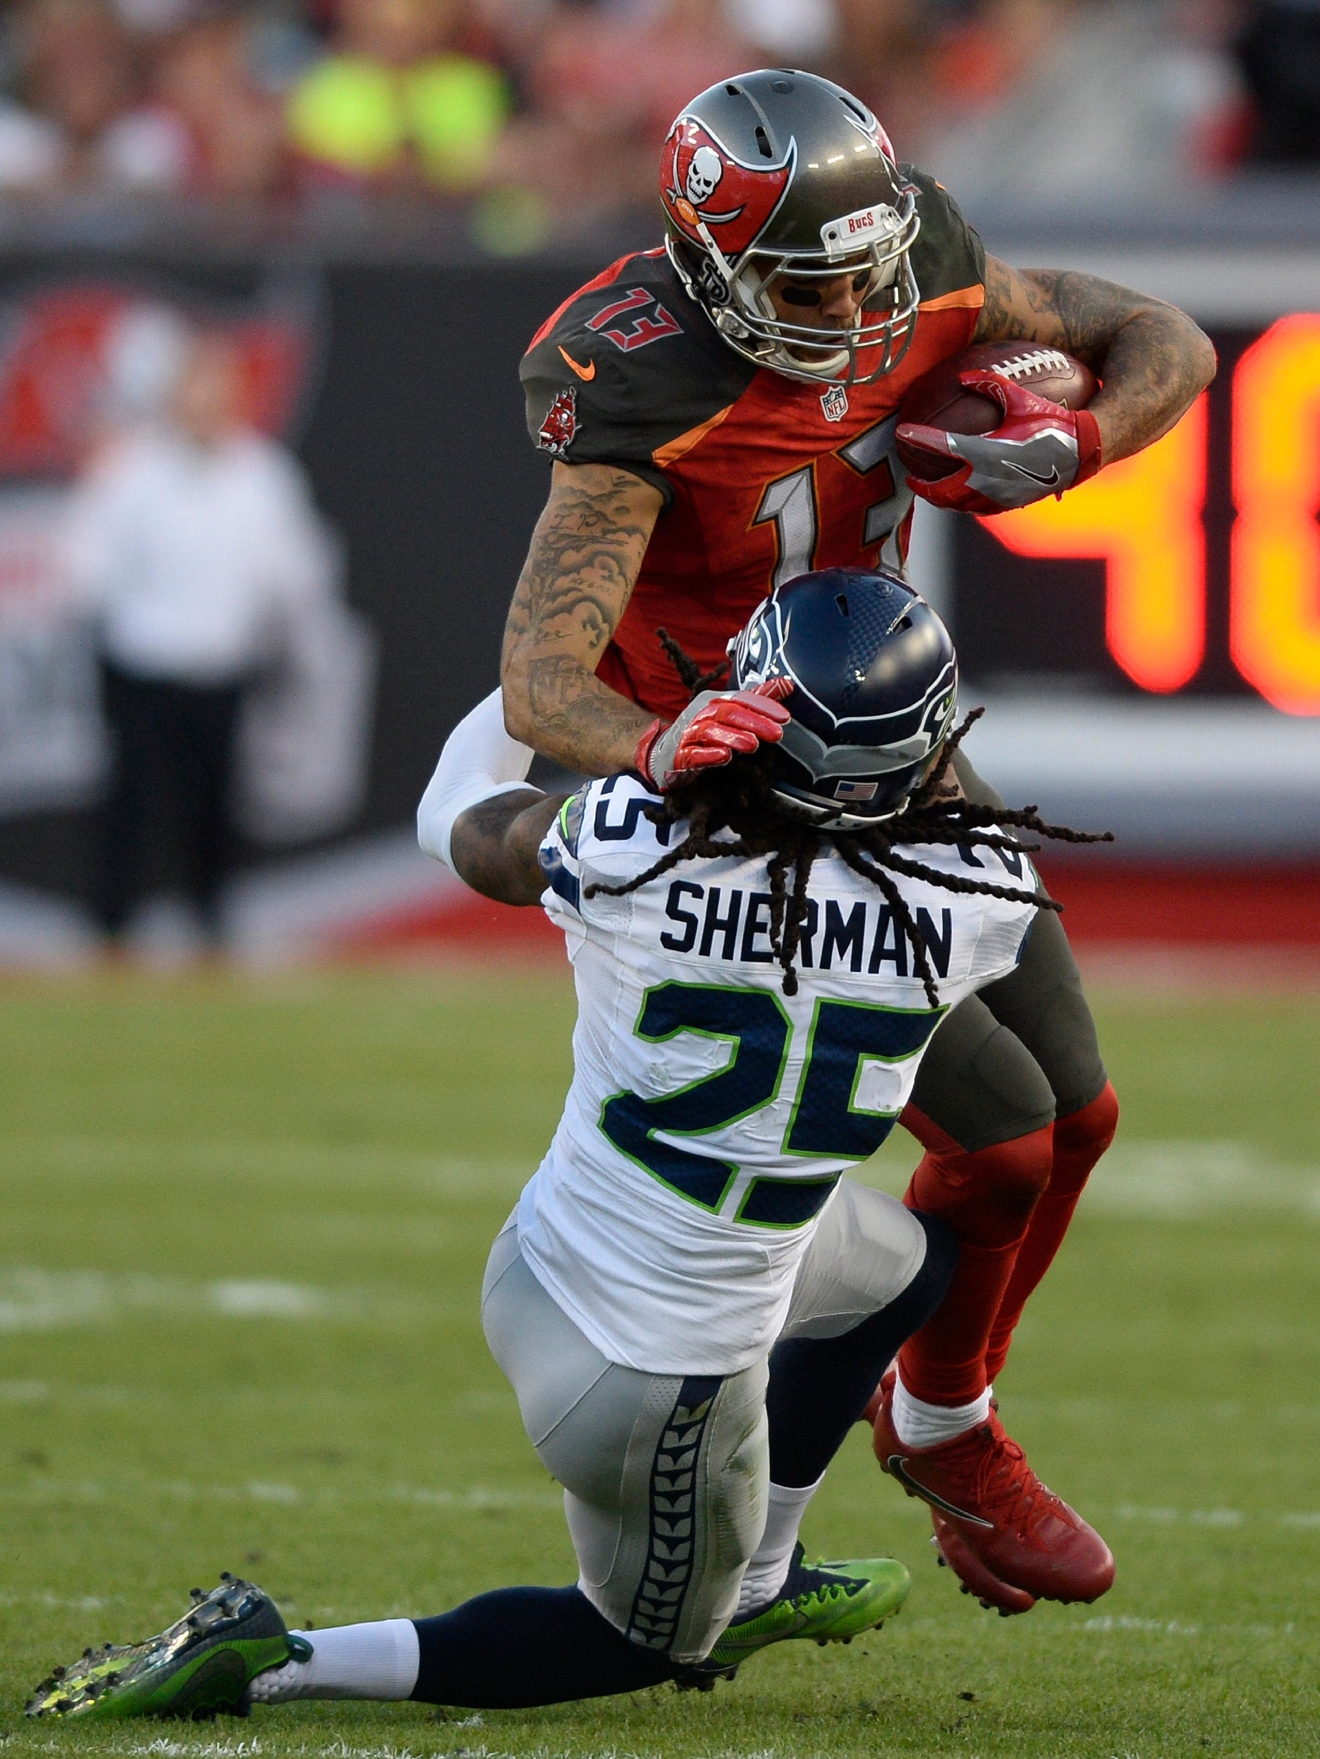 Seattle Seahawks cornerback Richard Sherman (25) stops Tampa Bay Buccaneers wide receiver Mike Evans (13) after a reception during the second quarter of an NFL football game Sunday, Nov. 27, 2016, in Tampa, Fla. (AP Photo/Jason Behnken)